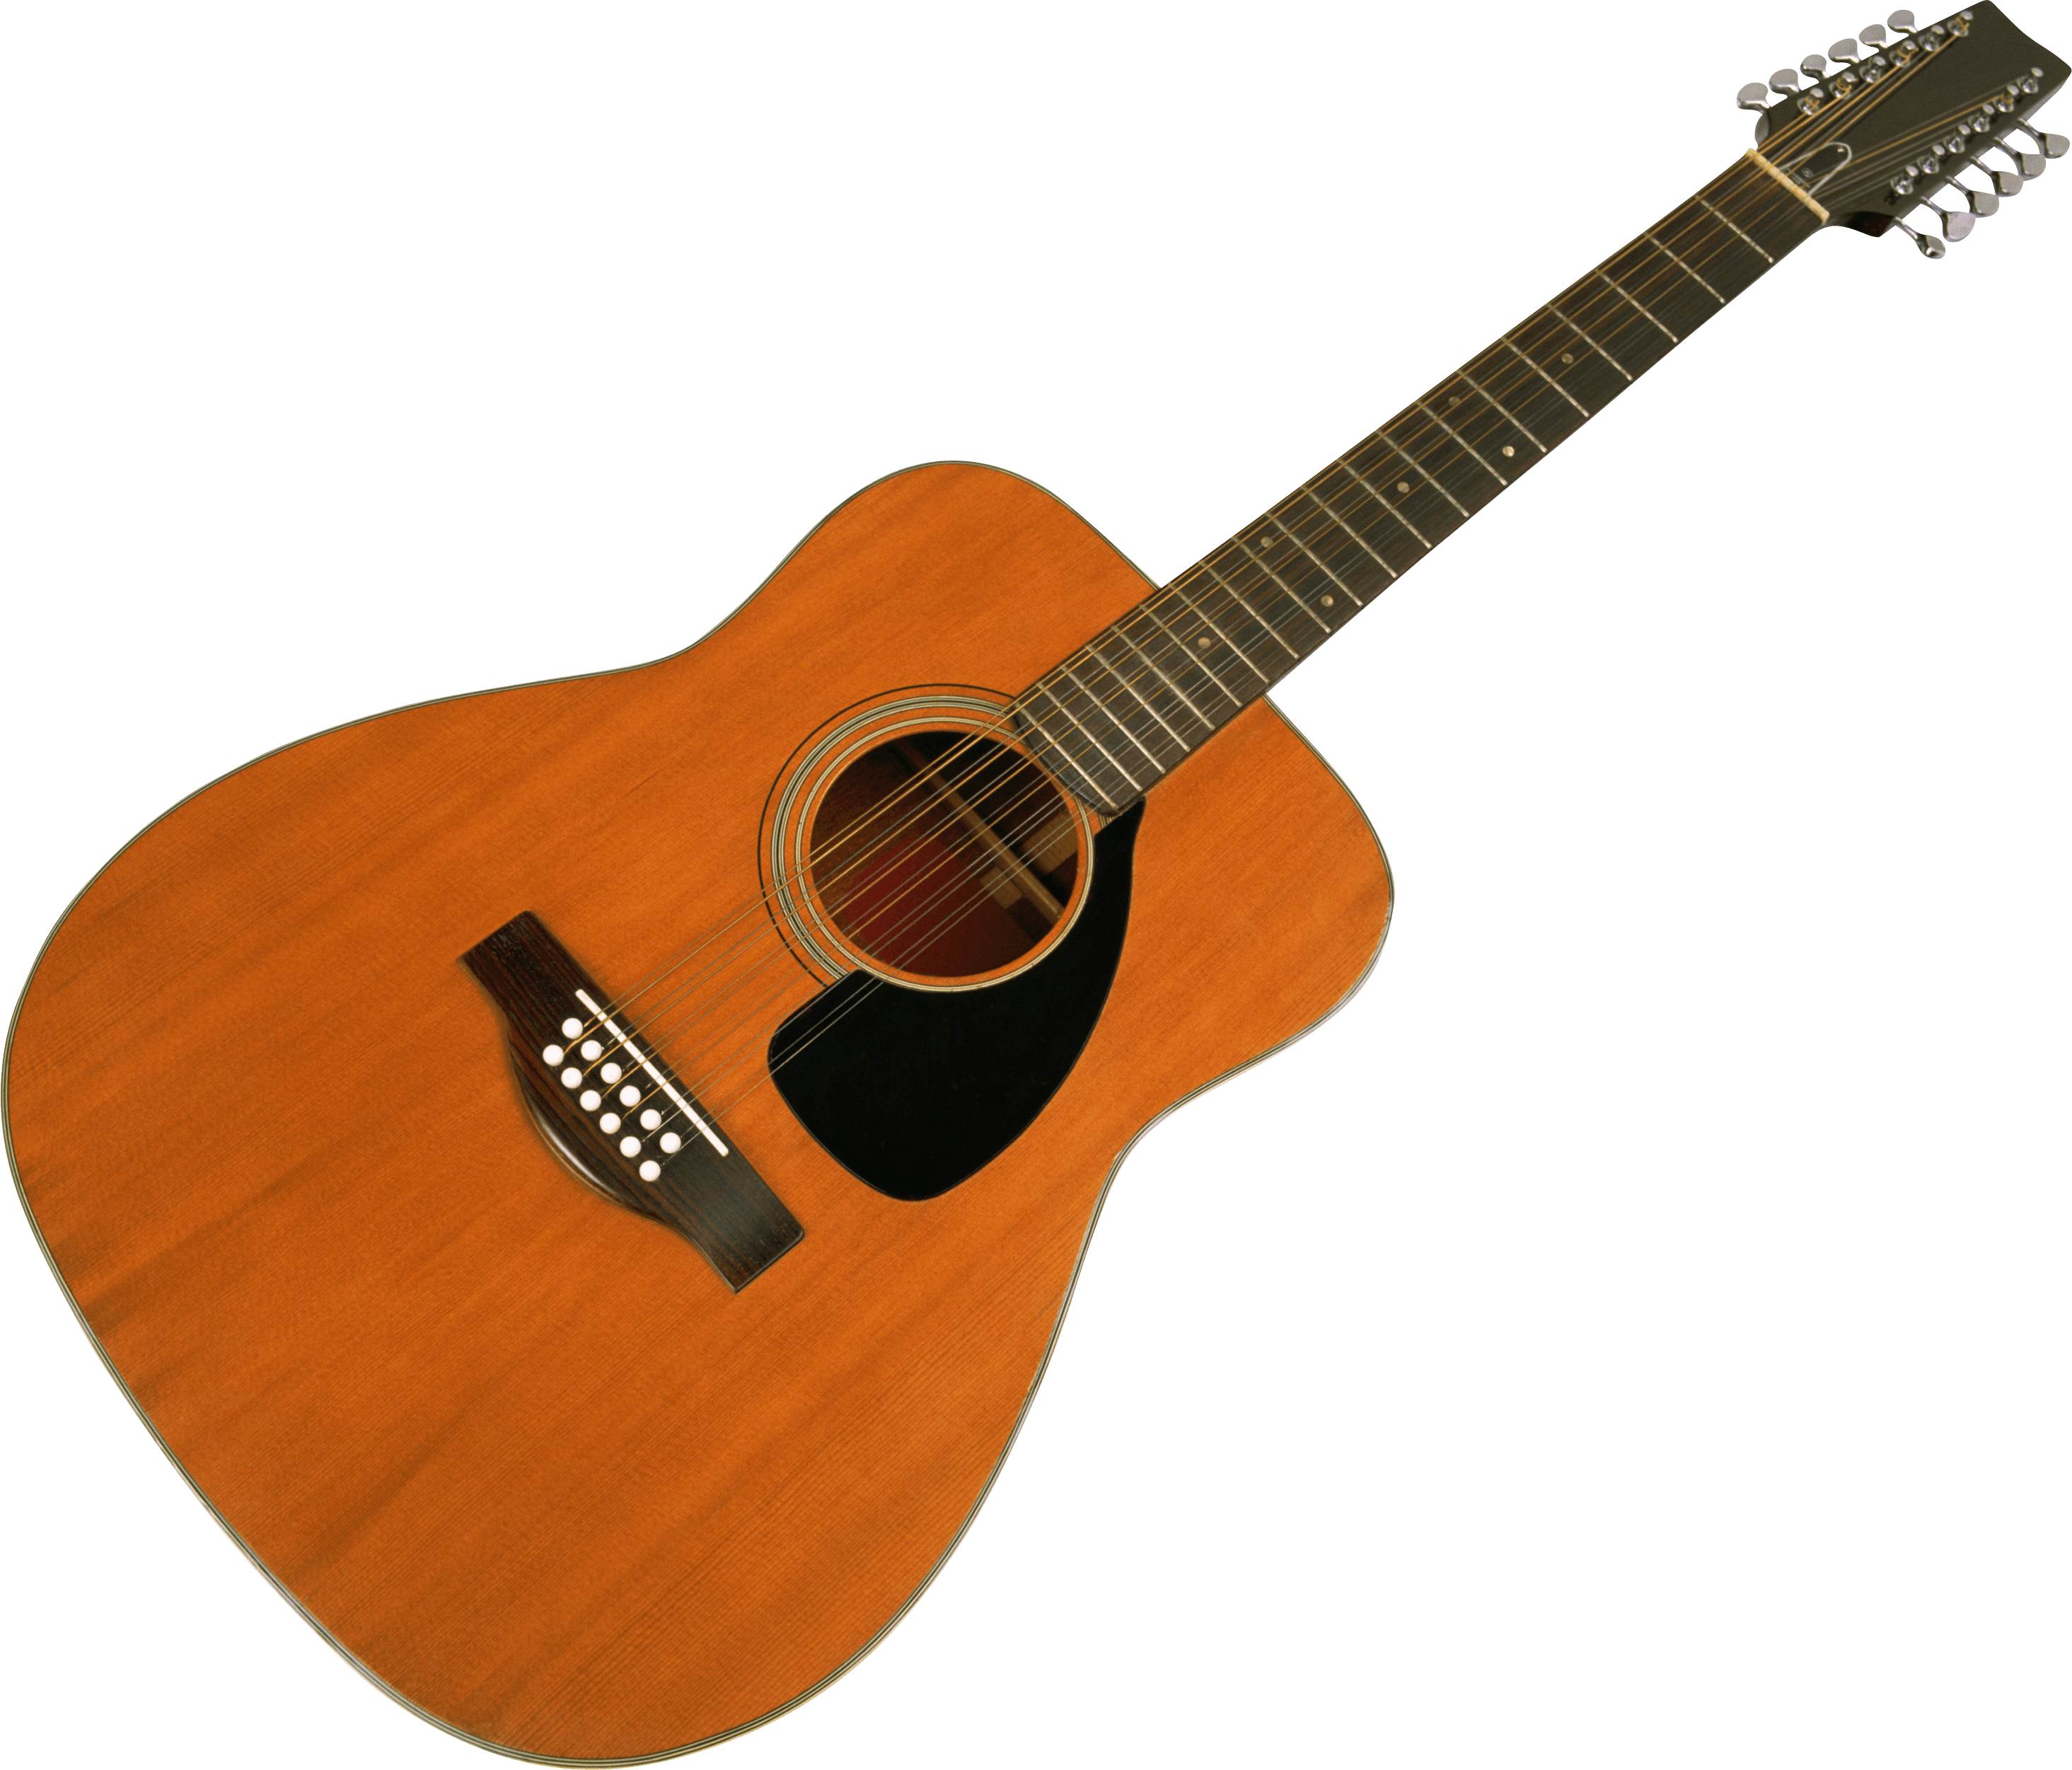 Png background names. Clipart guitar artistic